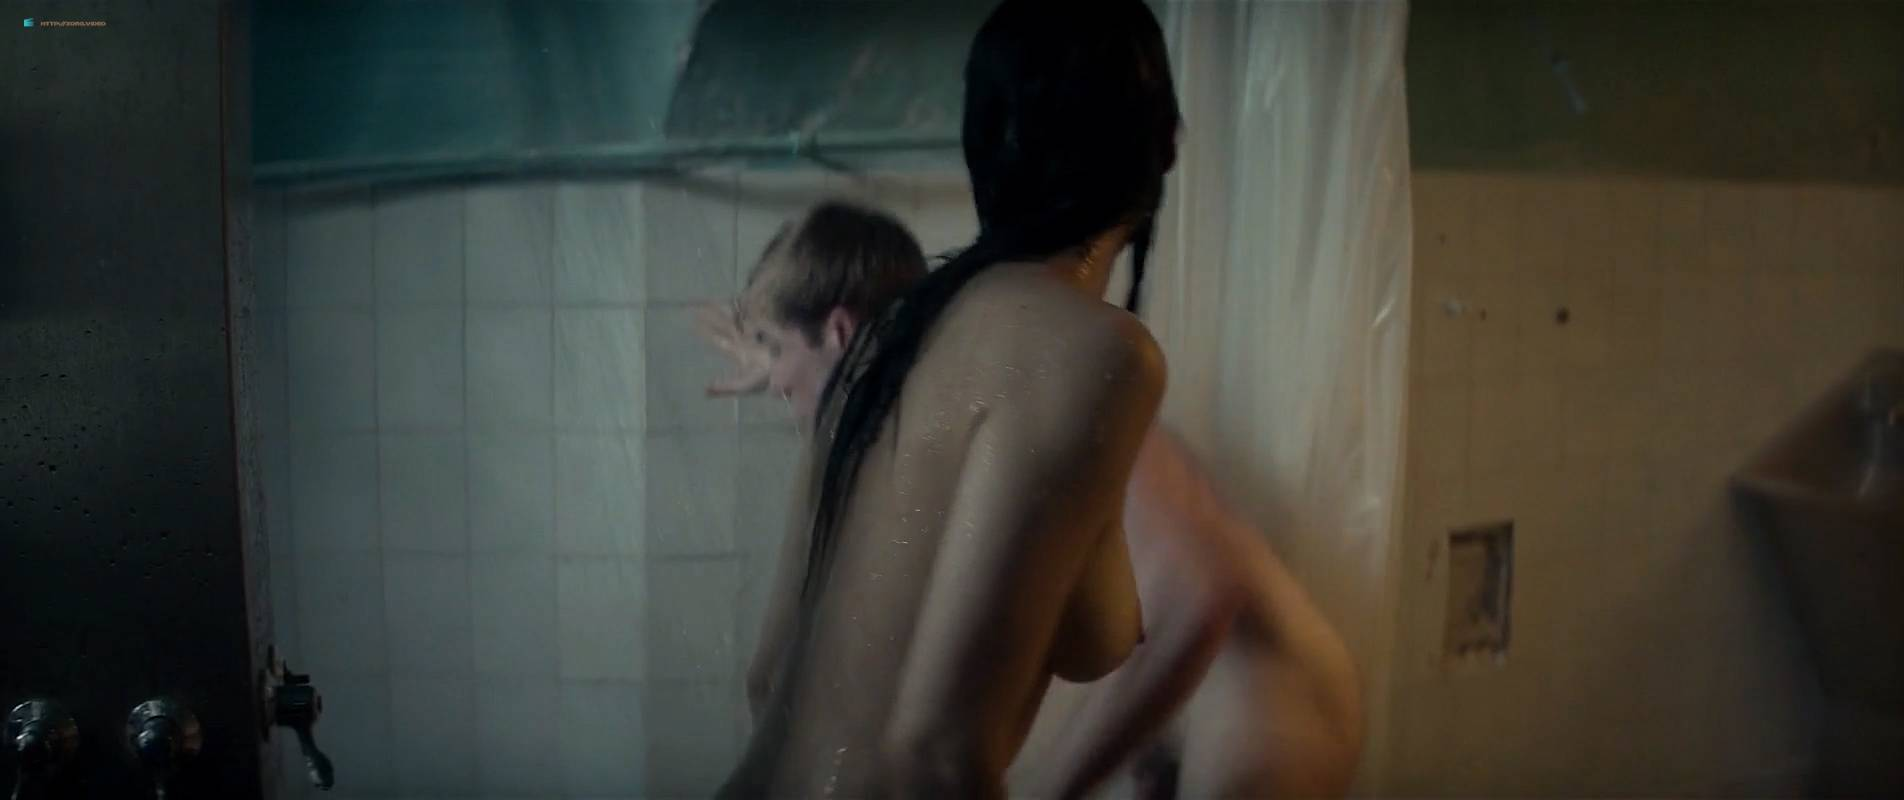 Jennifer-Lawrence-nude-topless-and-butt-Red-Sparrow-2018-HD-1080p-Web-007.jpg